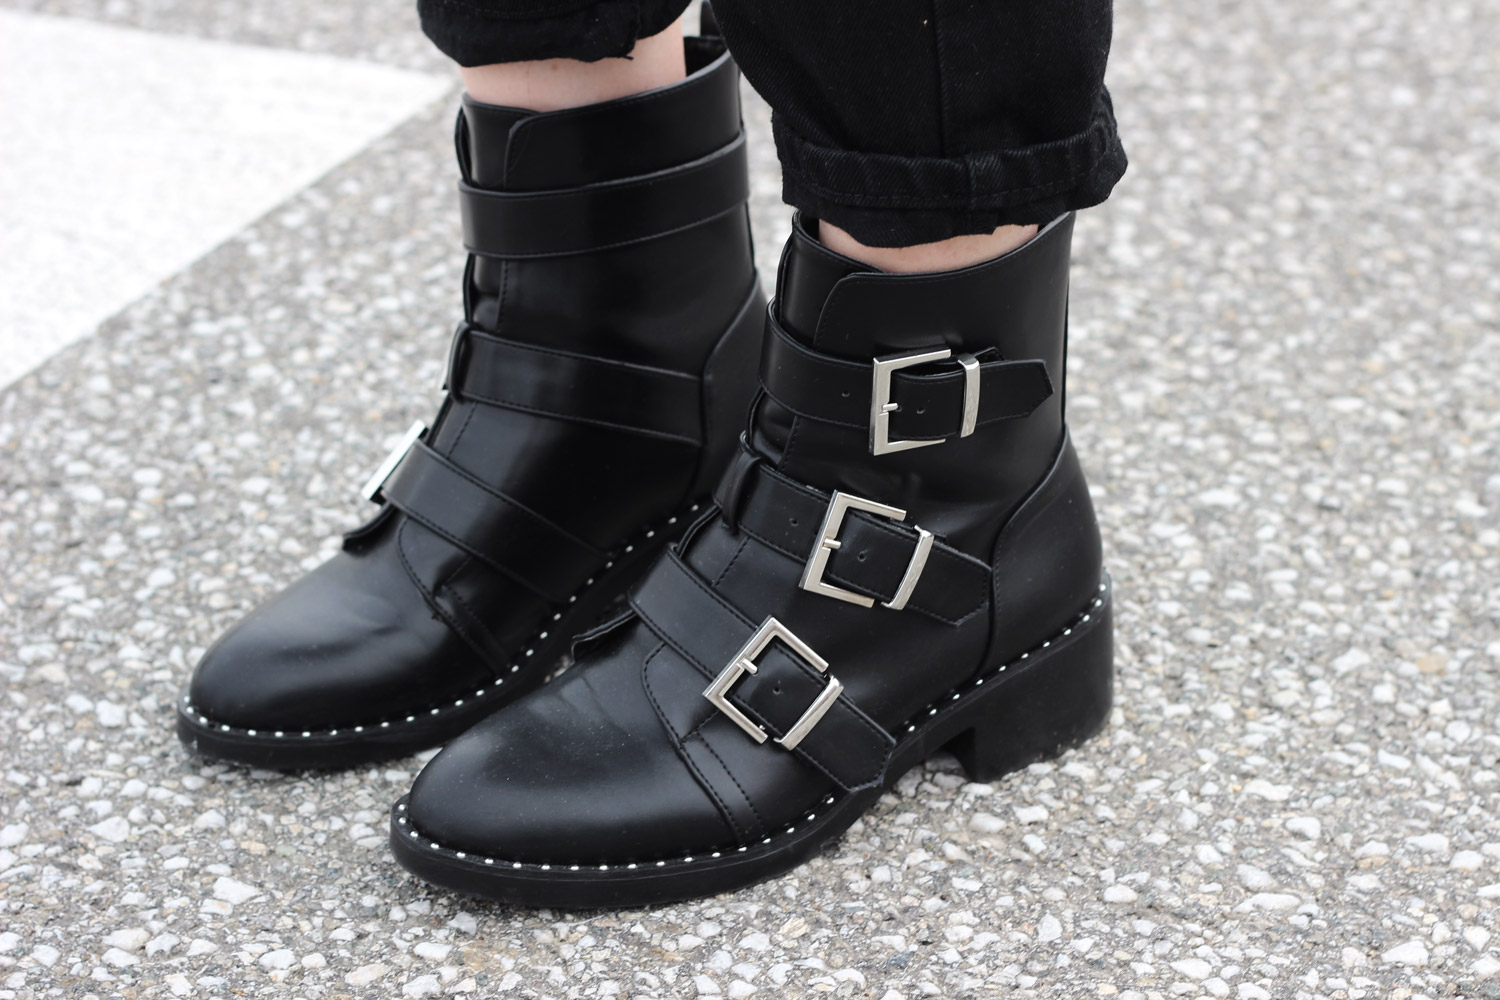 bottines-cloutees-pimkie-givenchy-like